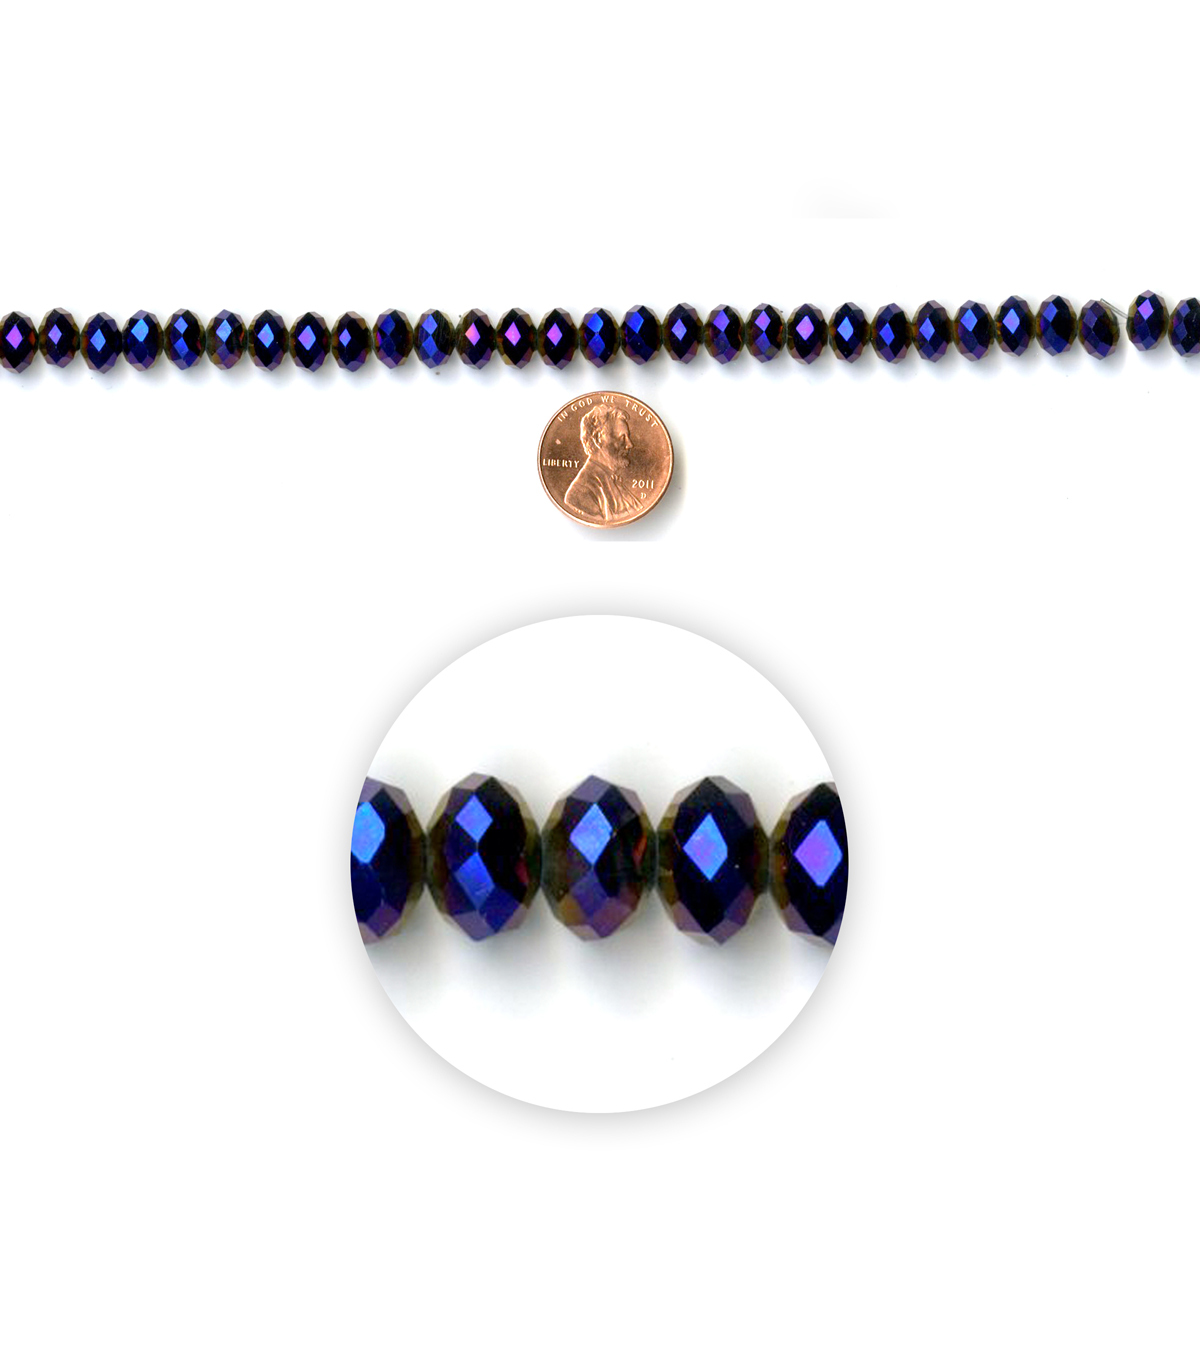 Blue Moon Strung Machine Cut Crystal Beads,Rondelle,Purple,Facetted